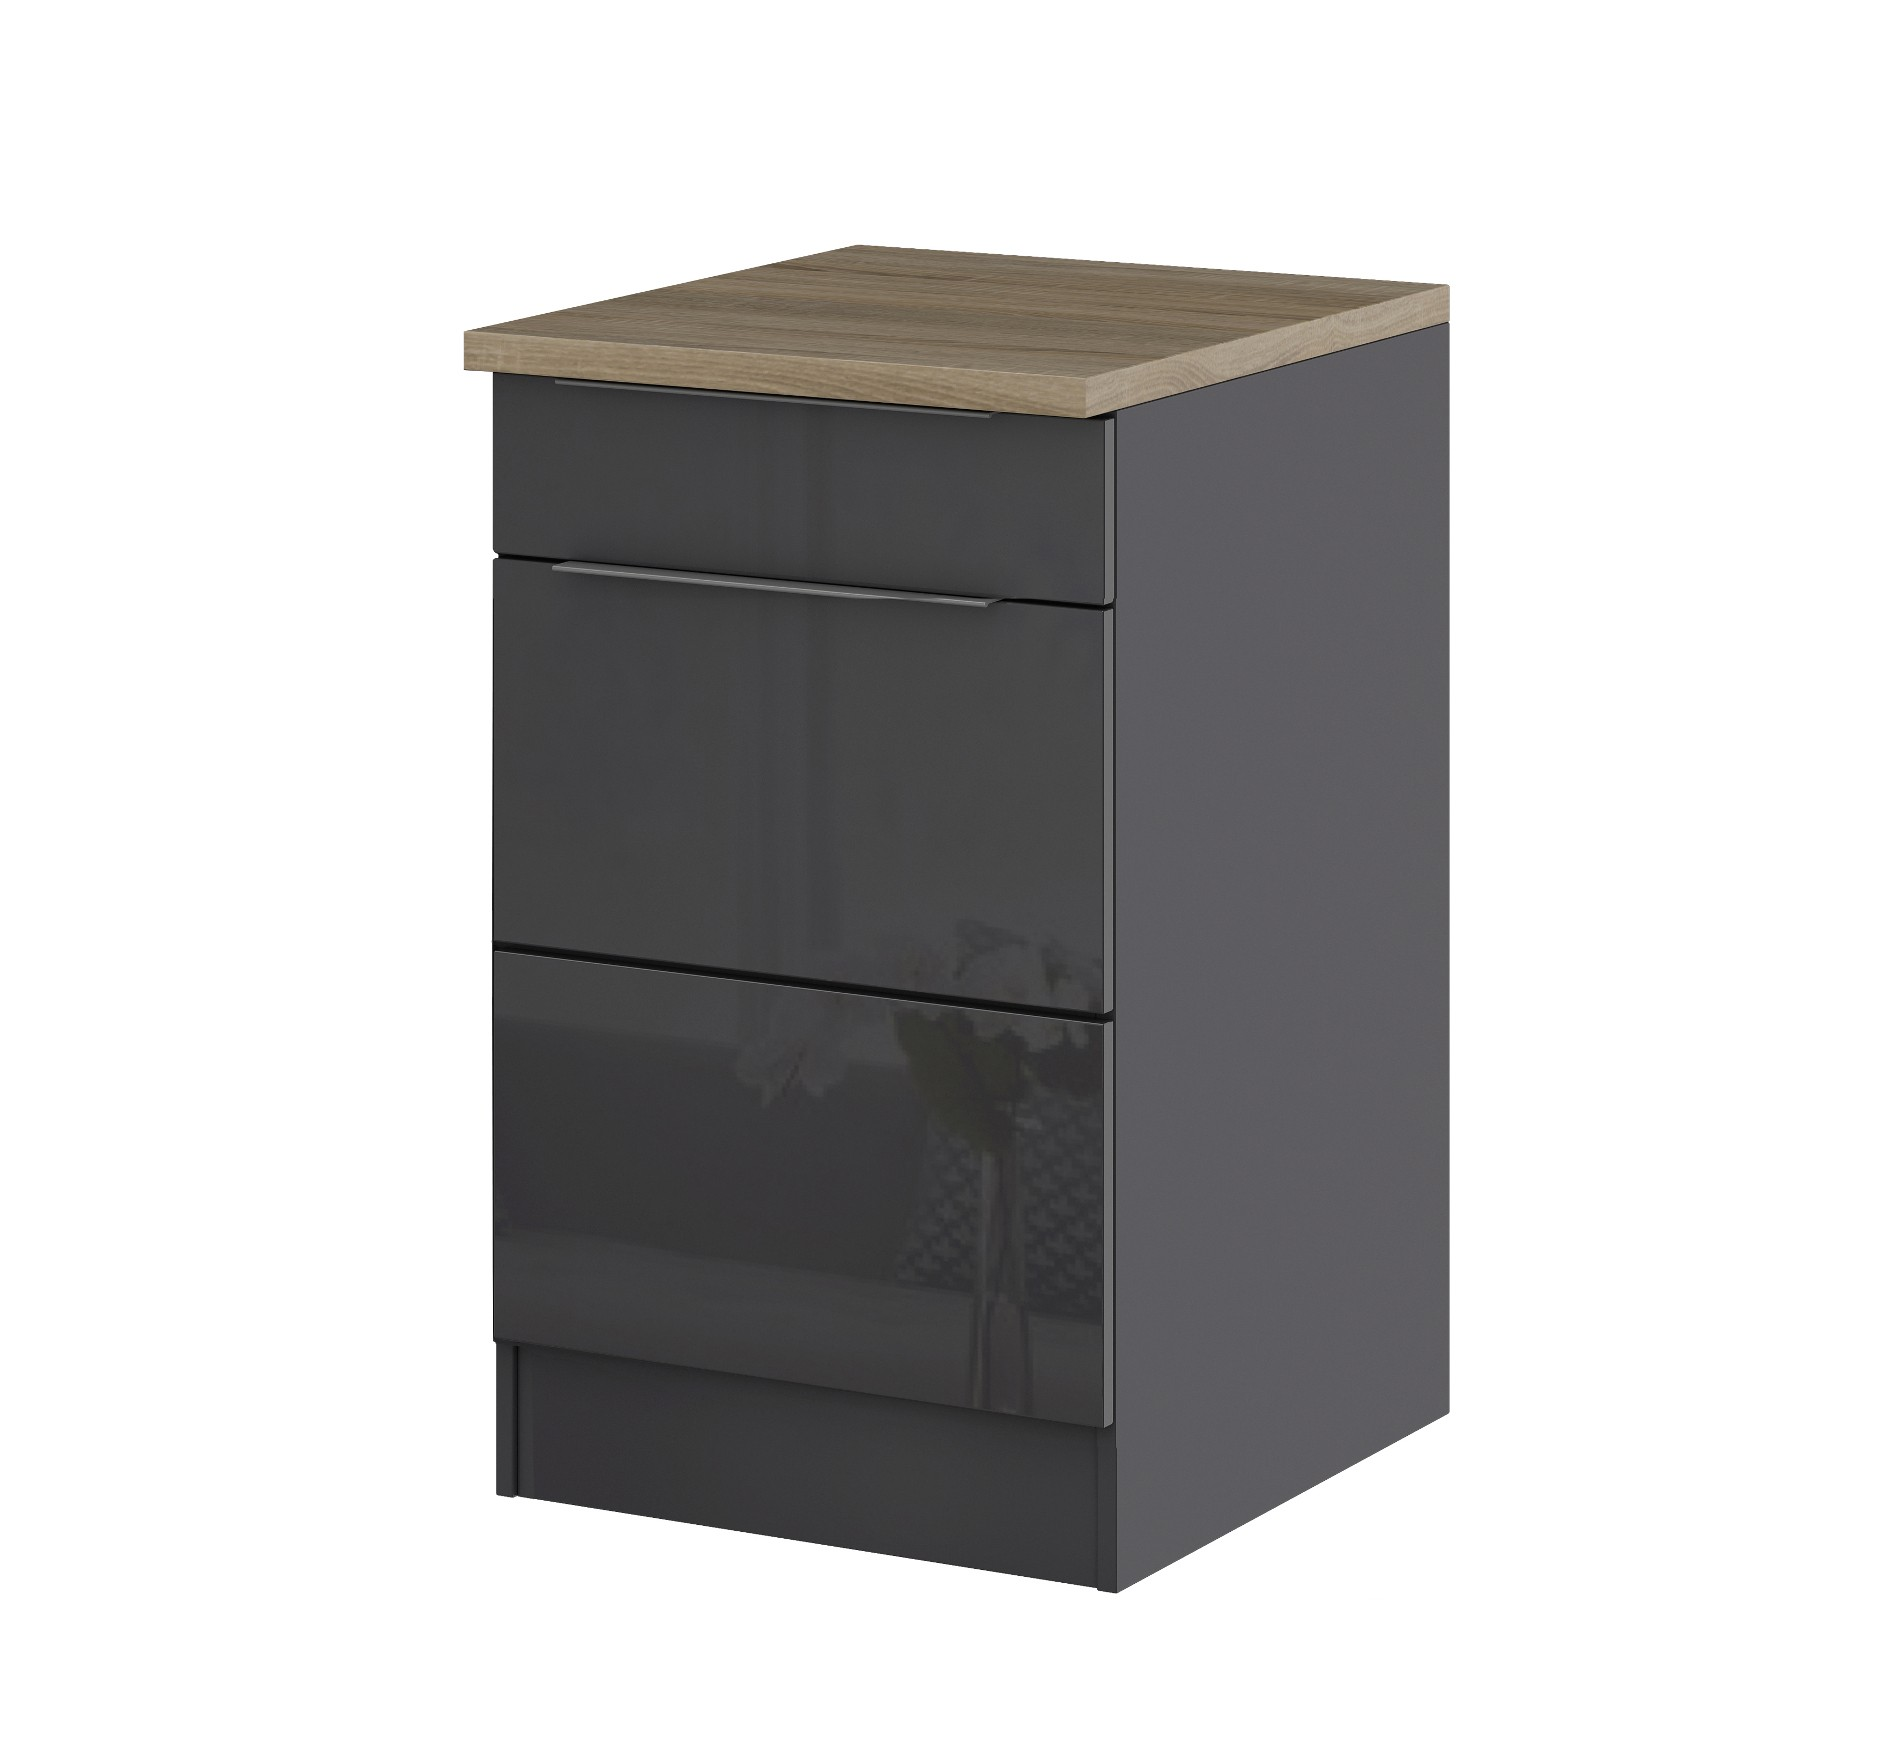 k chen unterschrank hamburg 1 t rig 50 cm breit hochglanz grau graphit k che hamburg. Black Bedroom Furniture Sets. Home Design Ideas